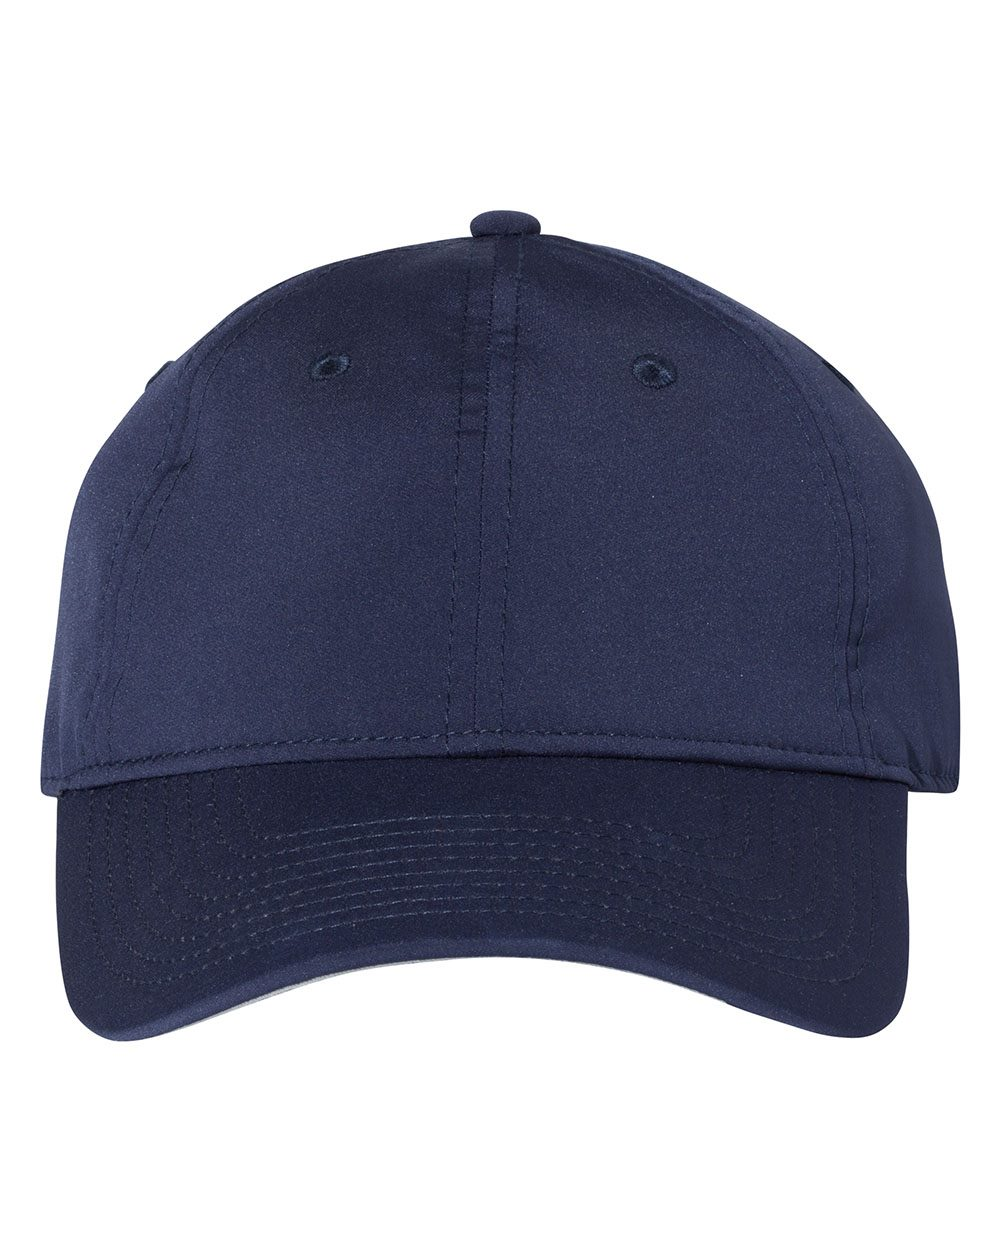 The Game Relaxed Gamechanger Cap